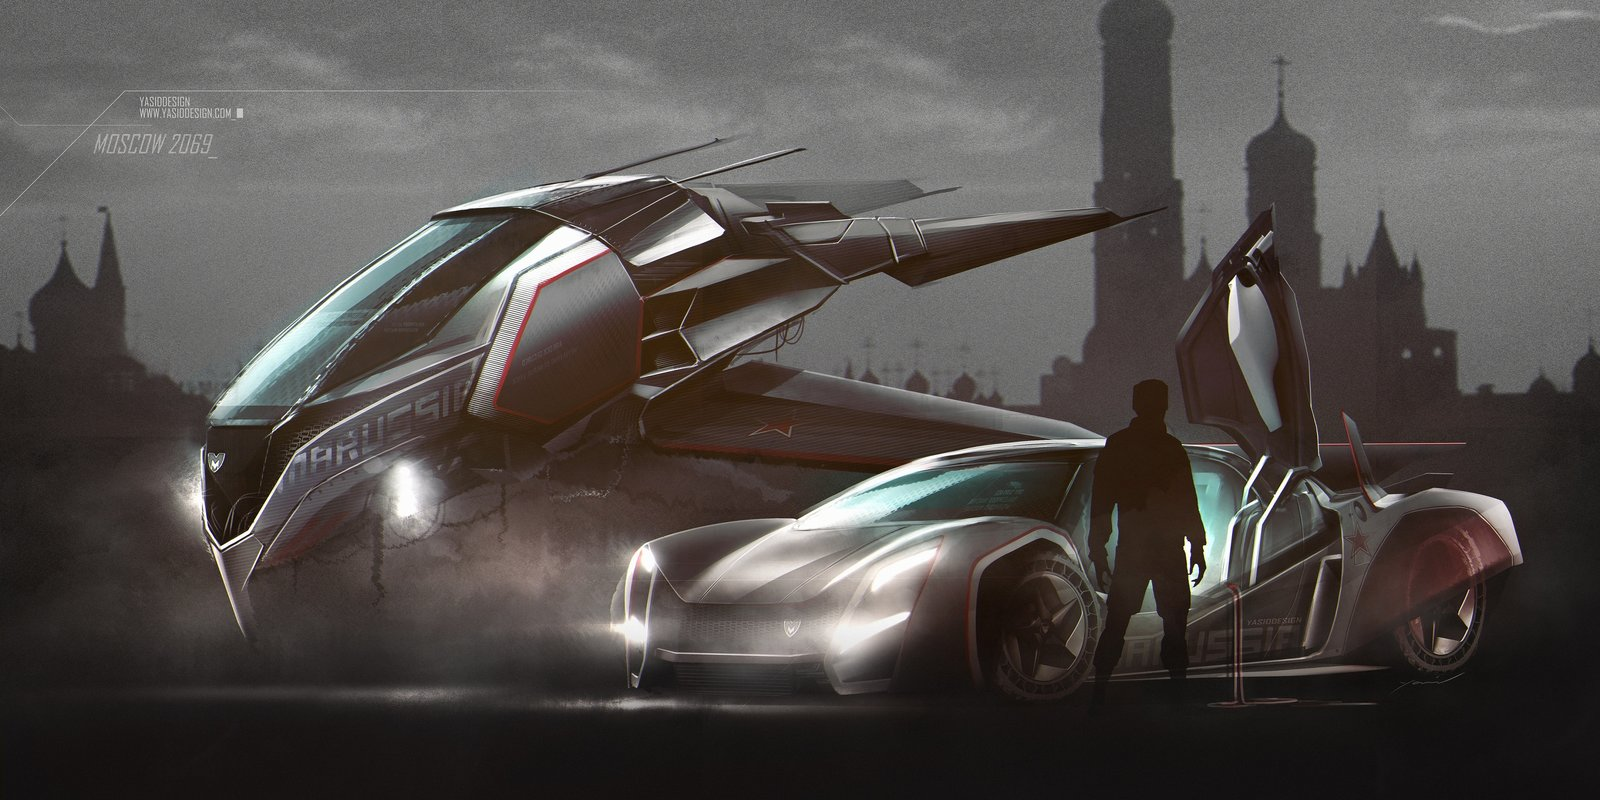 Moscow 2069 with Marussia